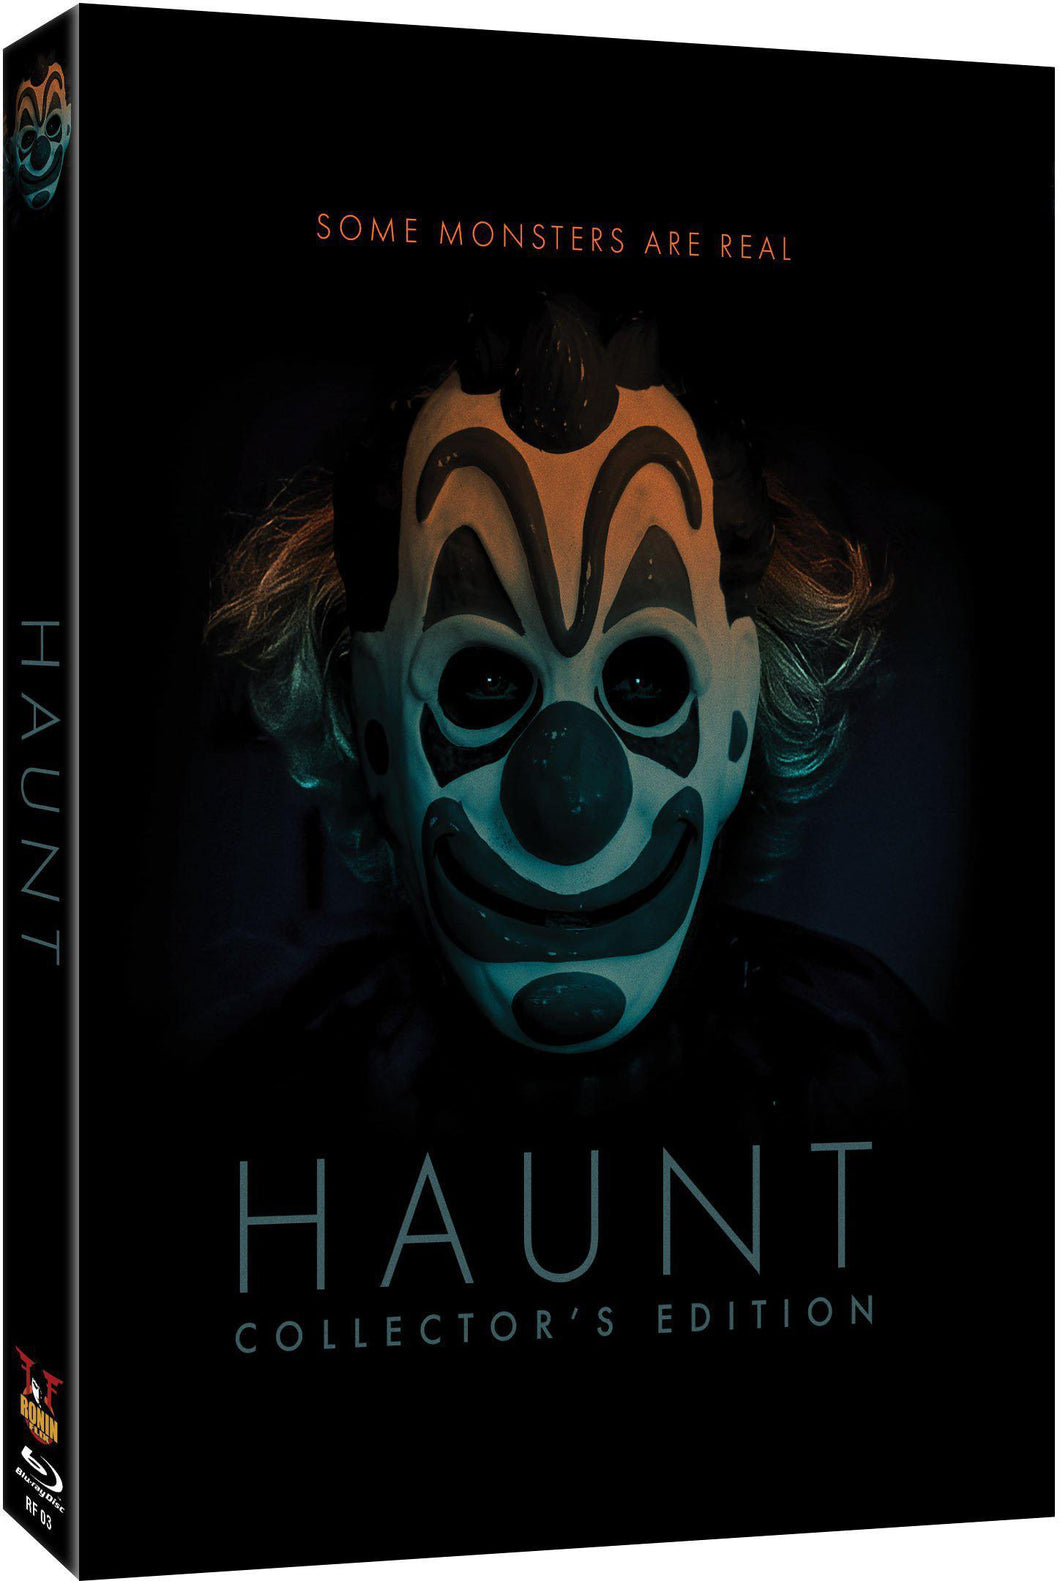 Haunt Collector's Edition Blu-ray (2 Disc Set): Ronin Flix - Slipcover